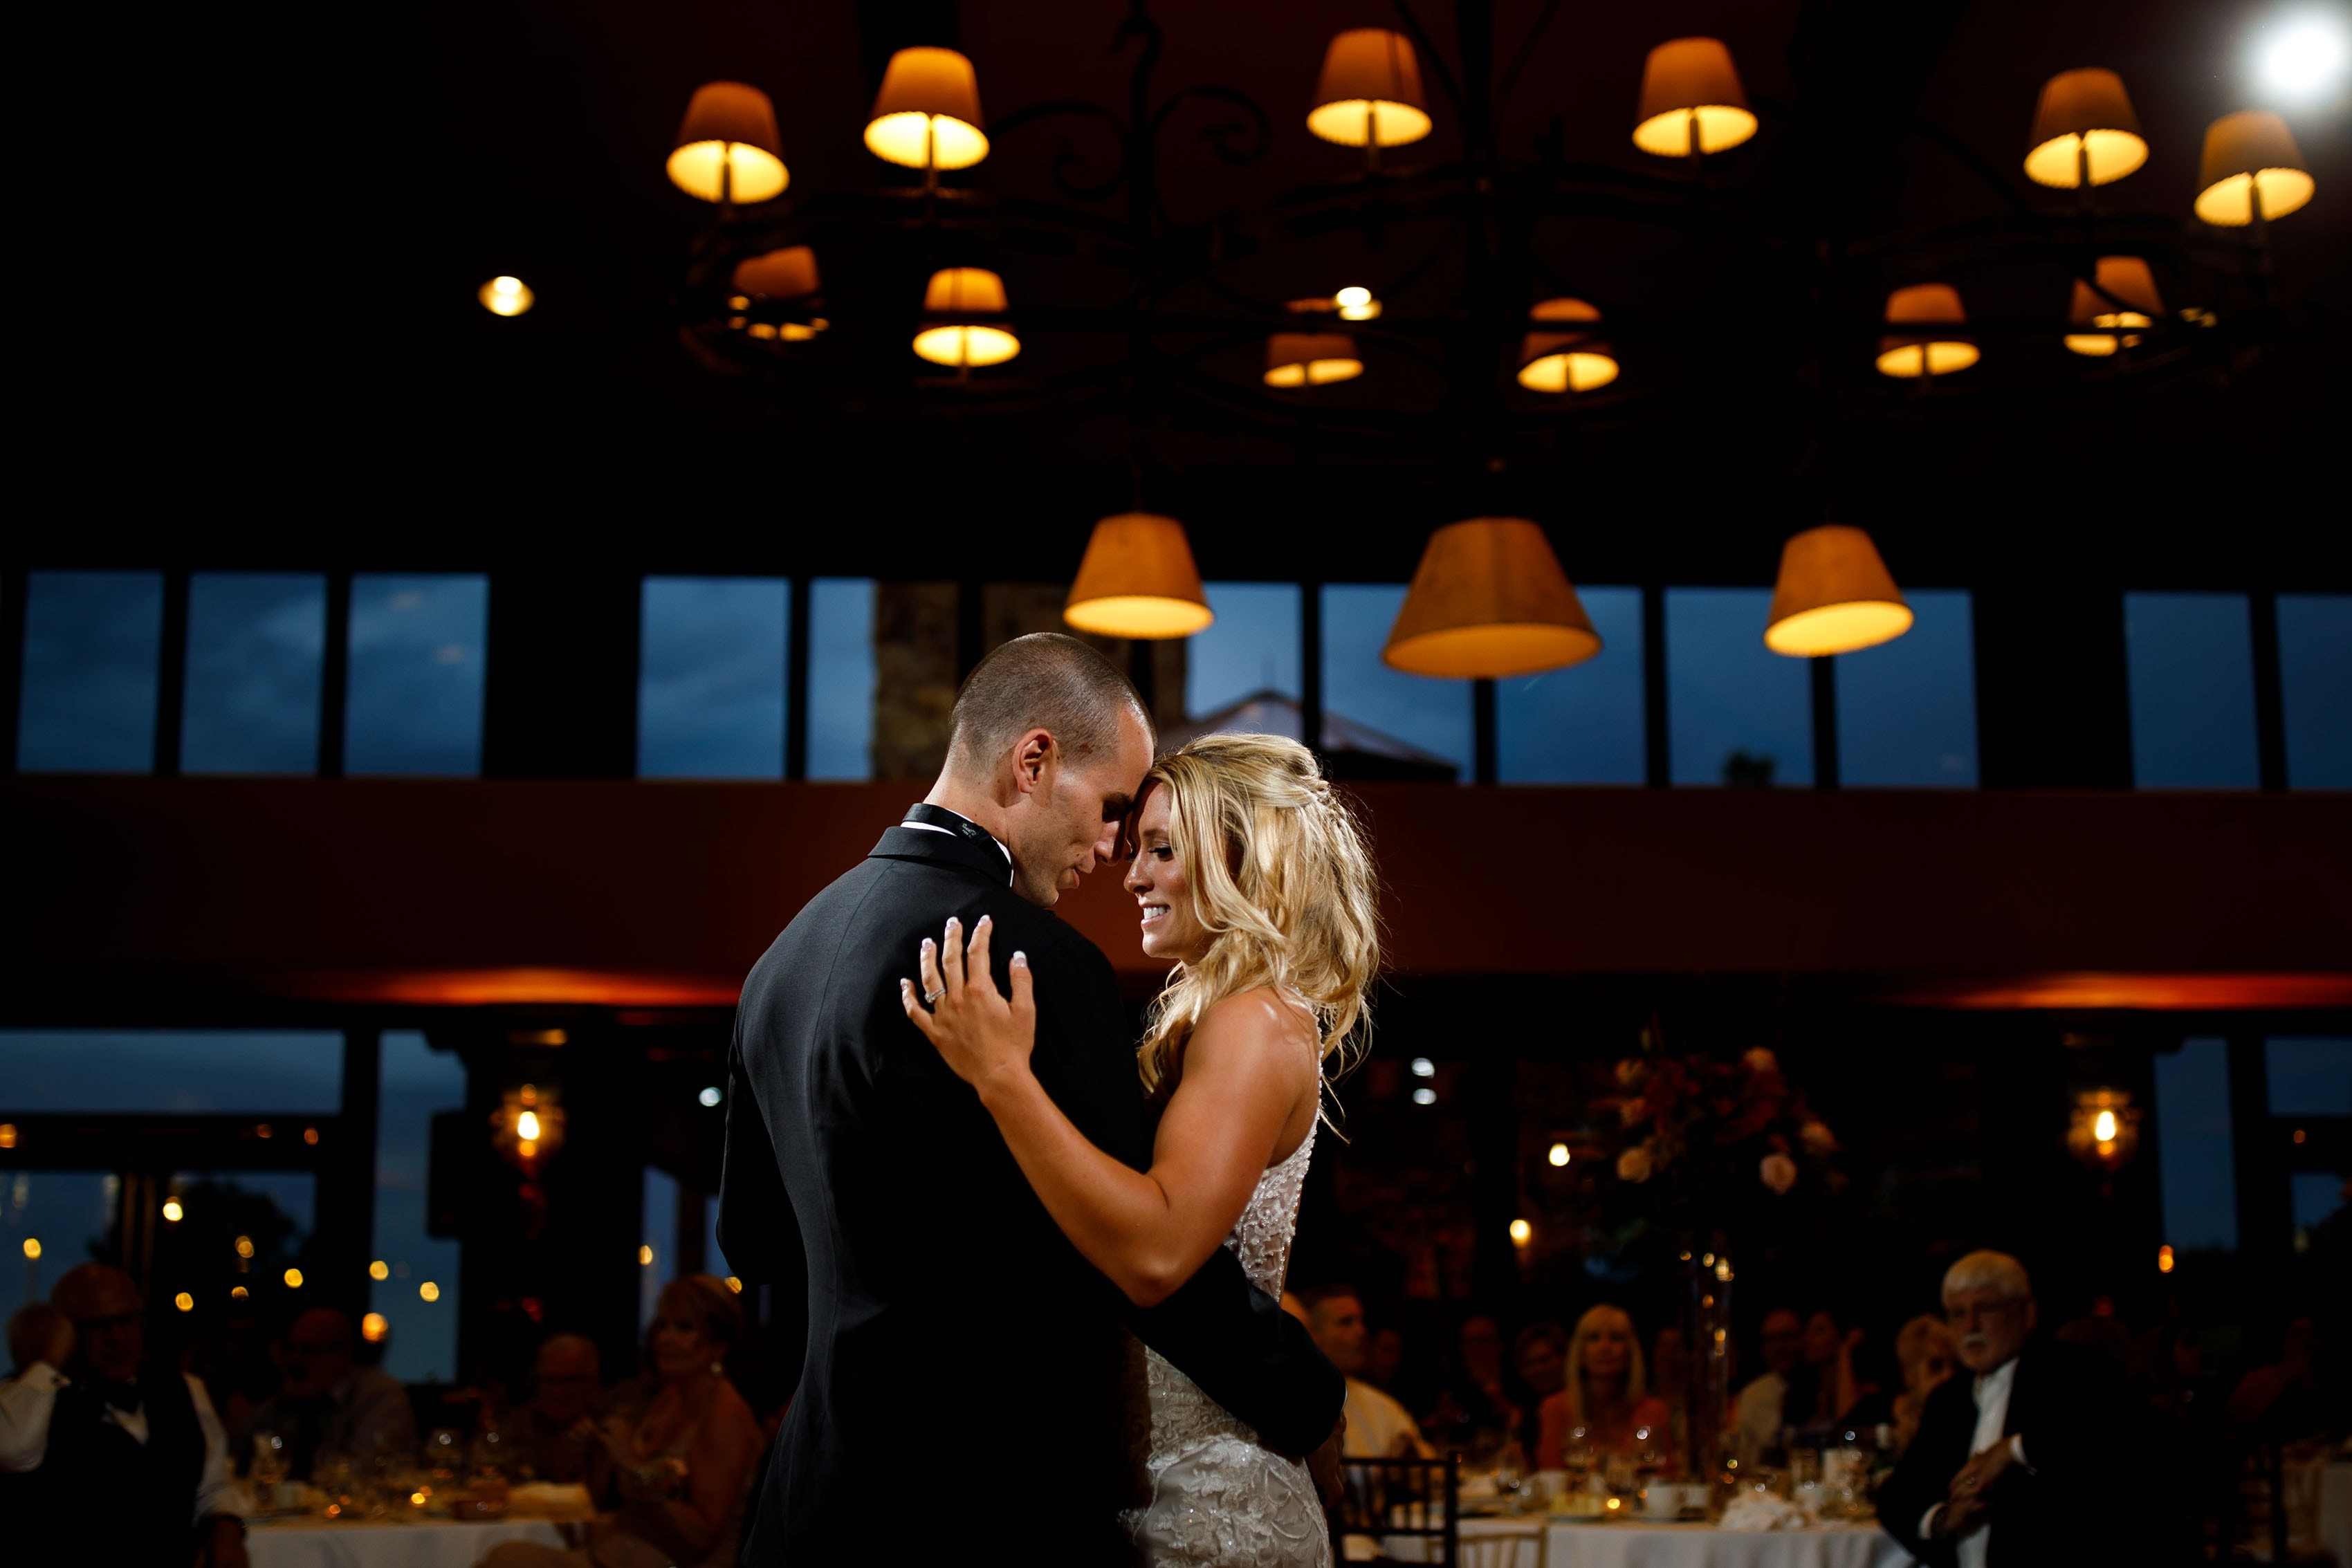 First dance during a Cheyenne Lodge wedding reception at The Broadmoor